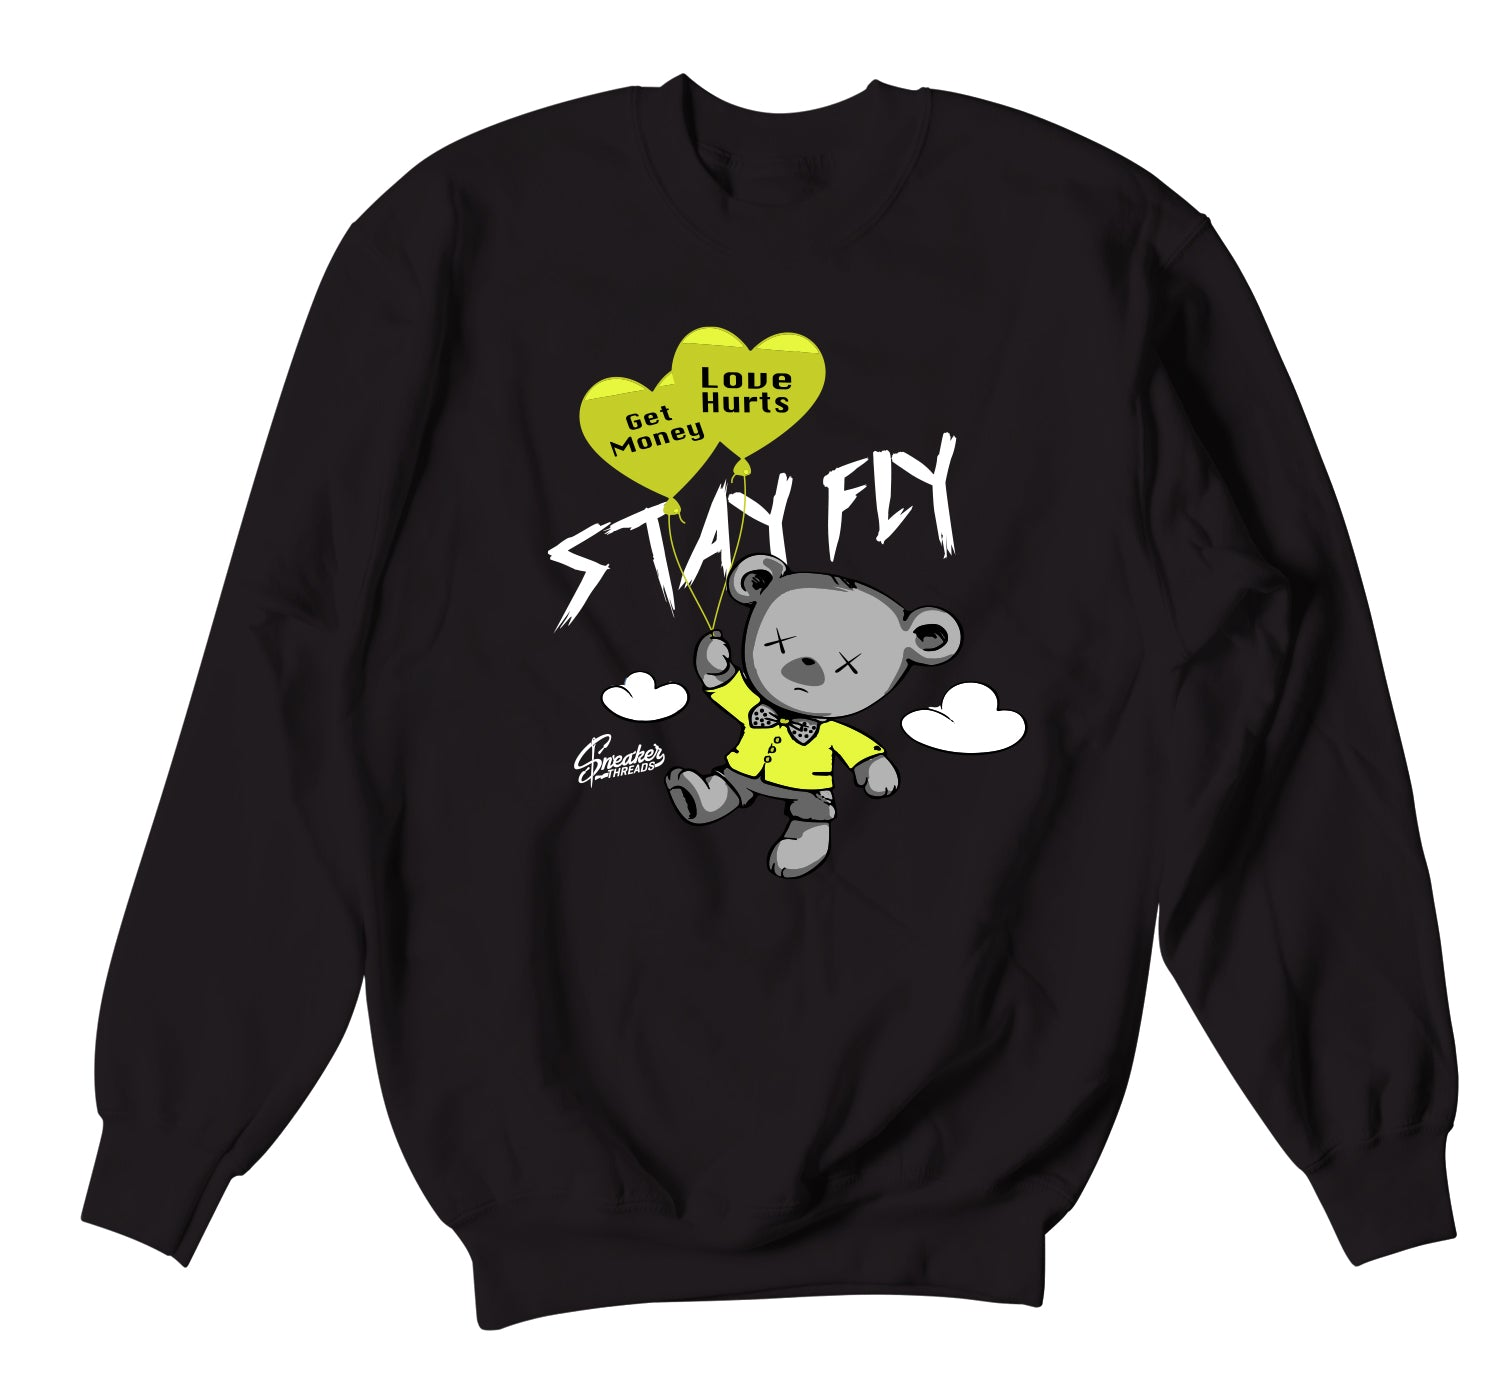 Foamposite Pro Volt Sweater - Money Over Love - Black